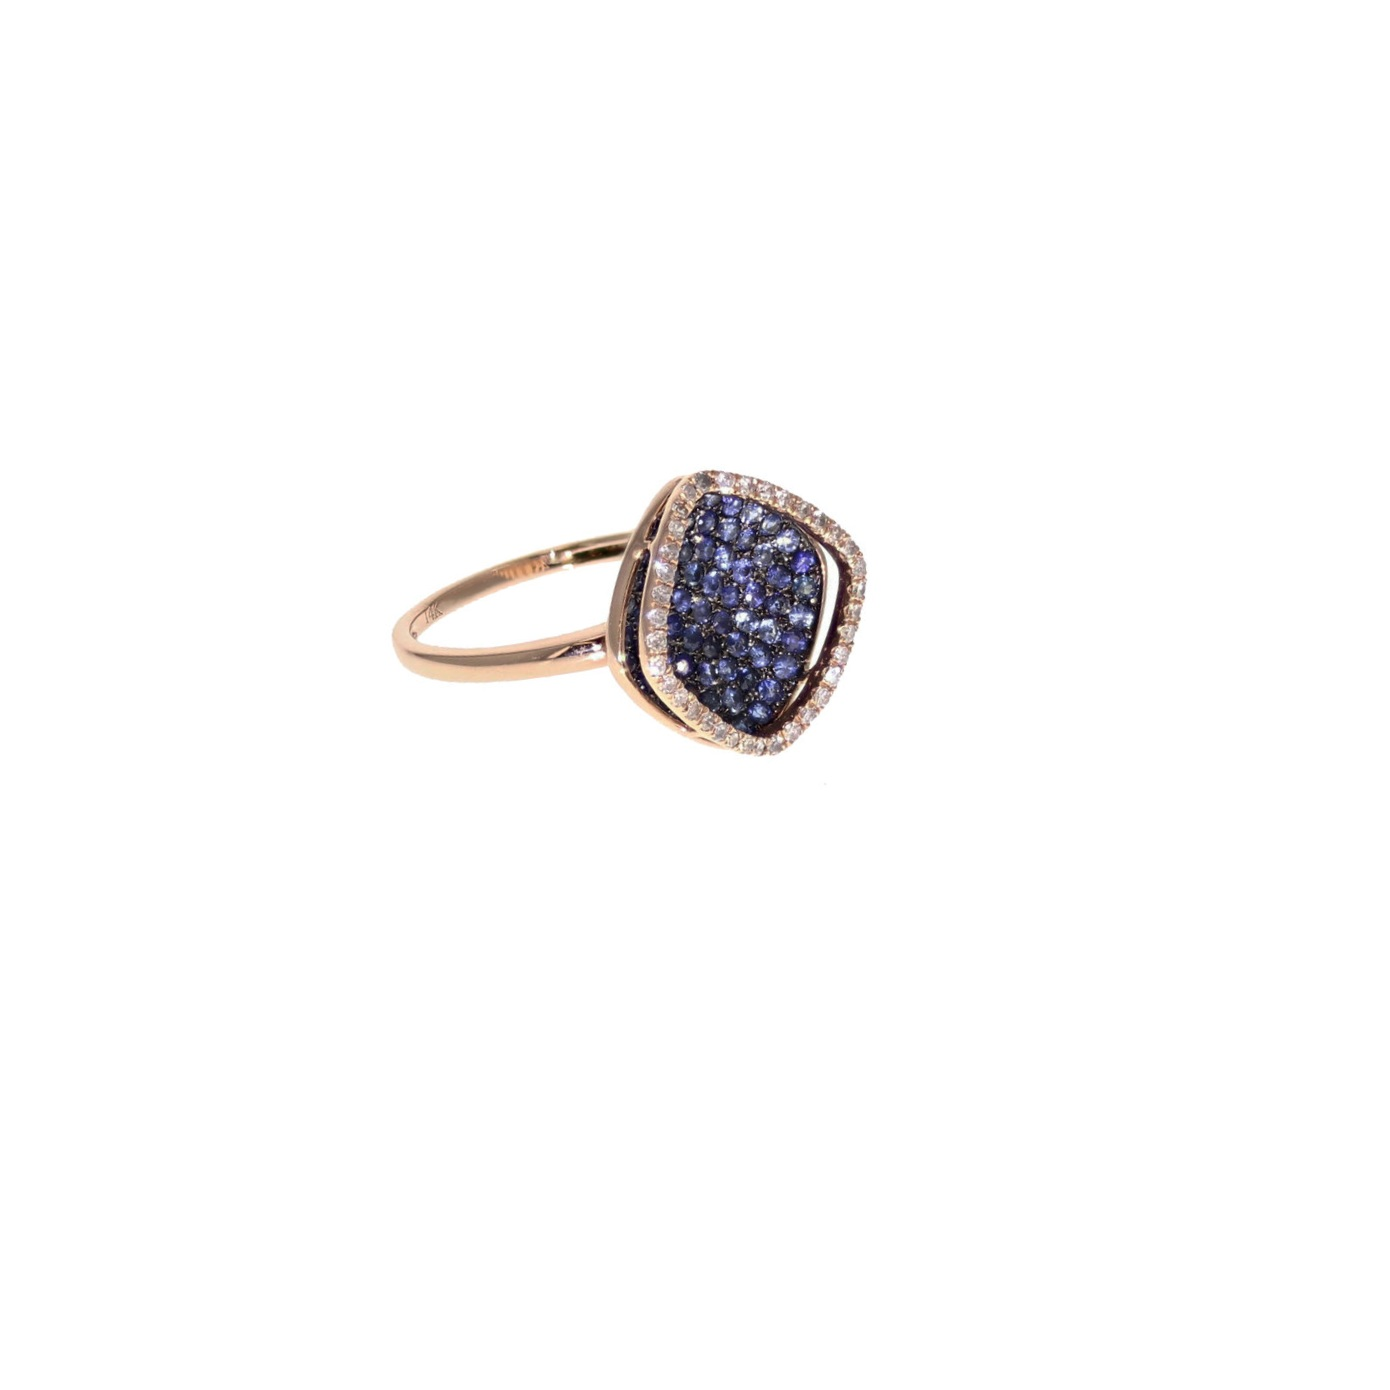 14k r/g Sapphire and Diamond ring. $2810